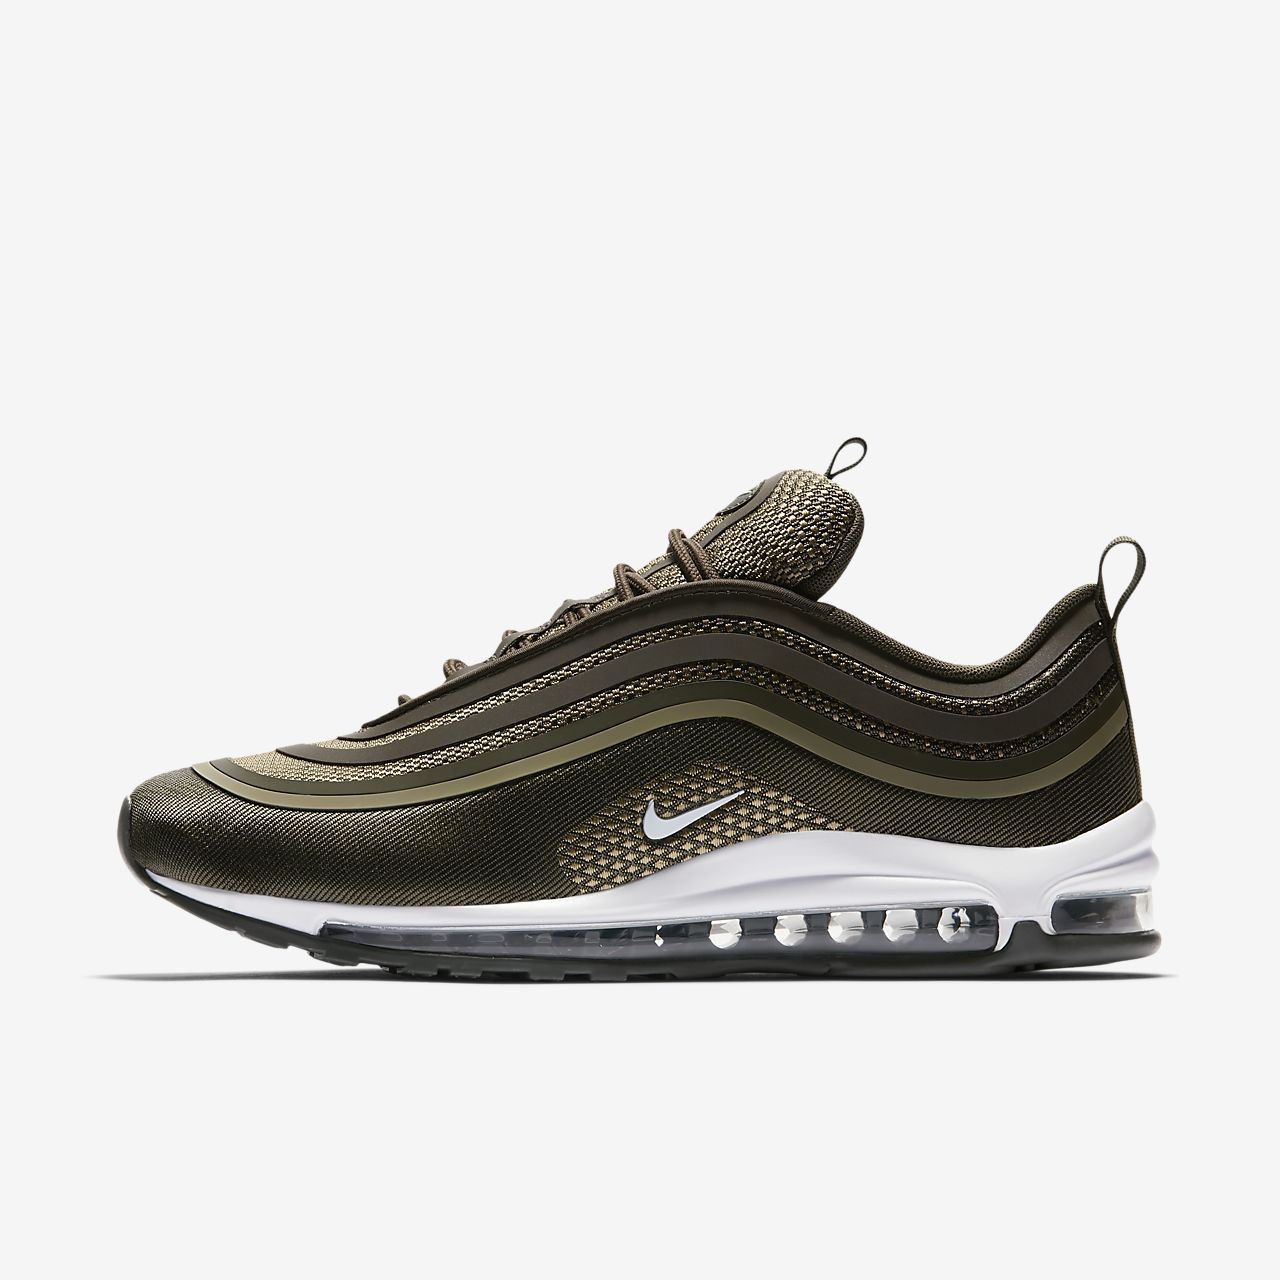 nike air max 97 ultra 39 17 men 39 s shoe gb. Black Bedroom Furniture Sets. Home Design Ideas